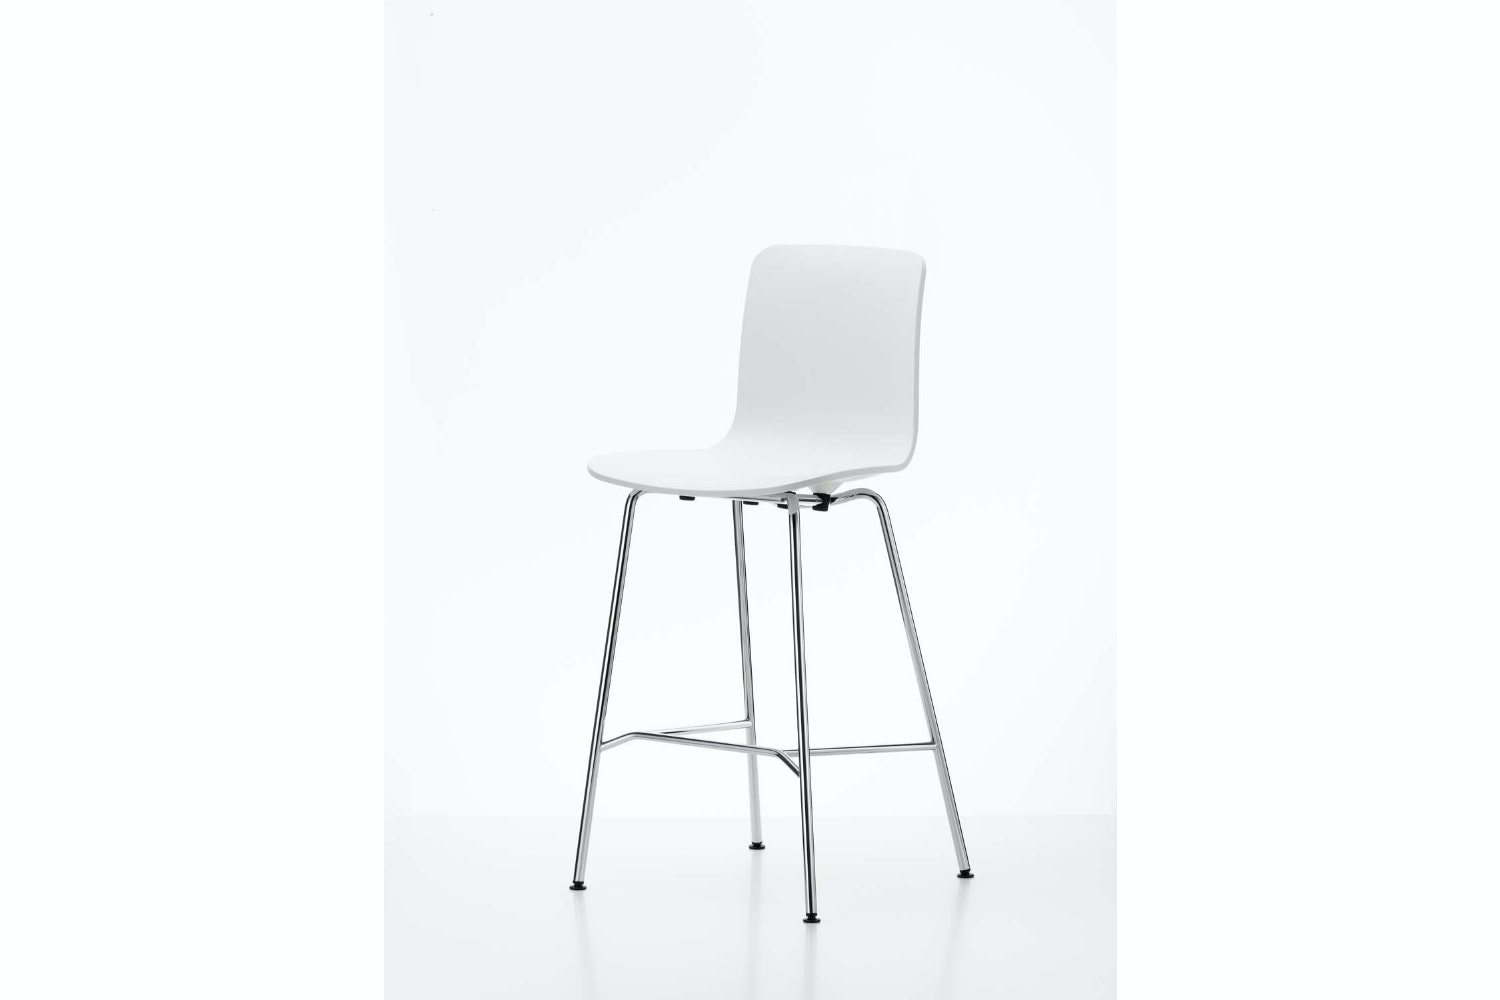 HAL Stool Medium in White by Jasper Morrison for Vitra